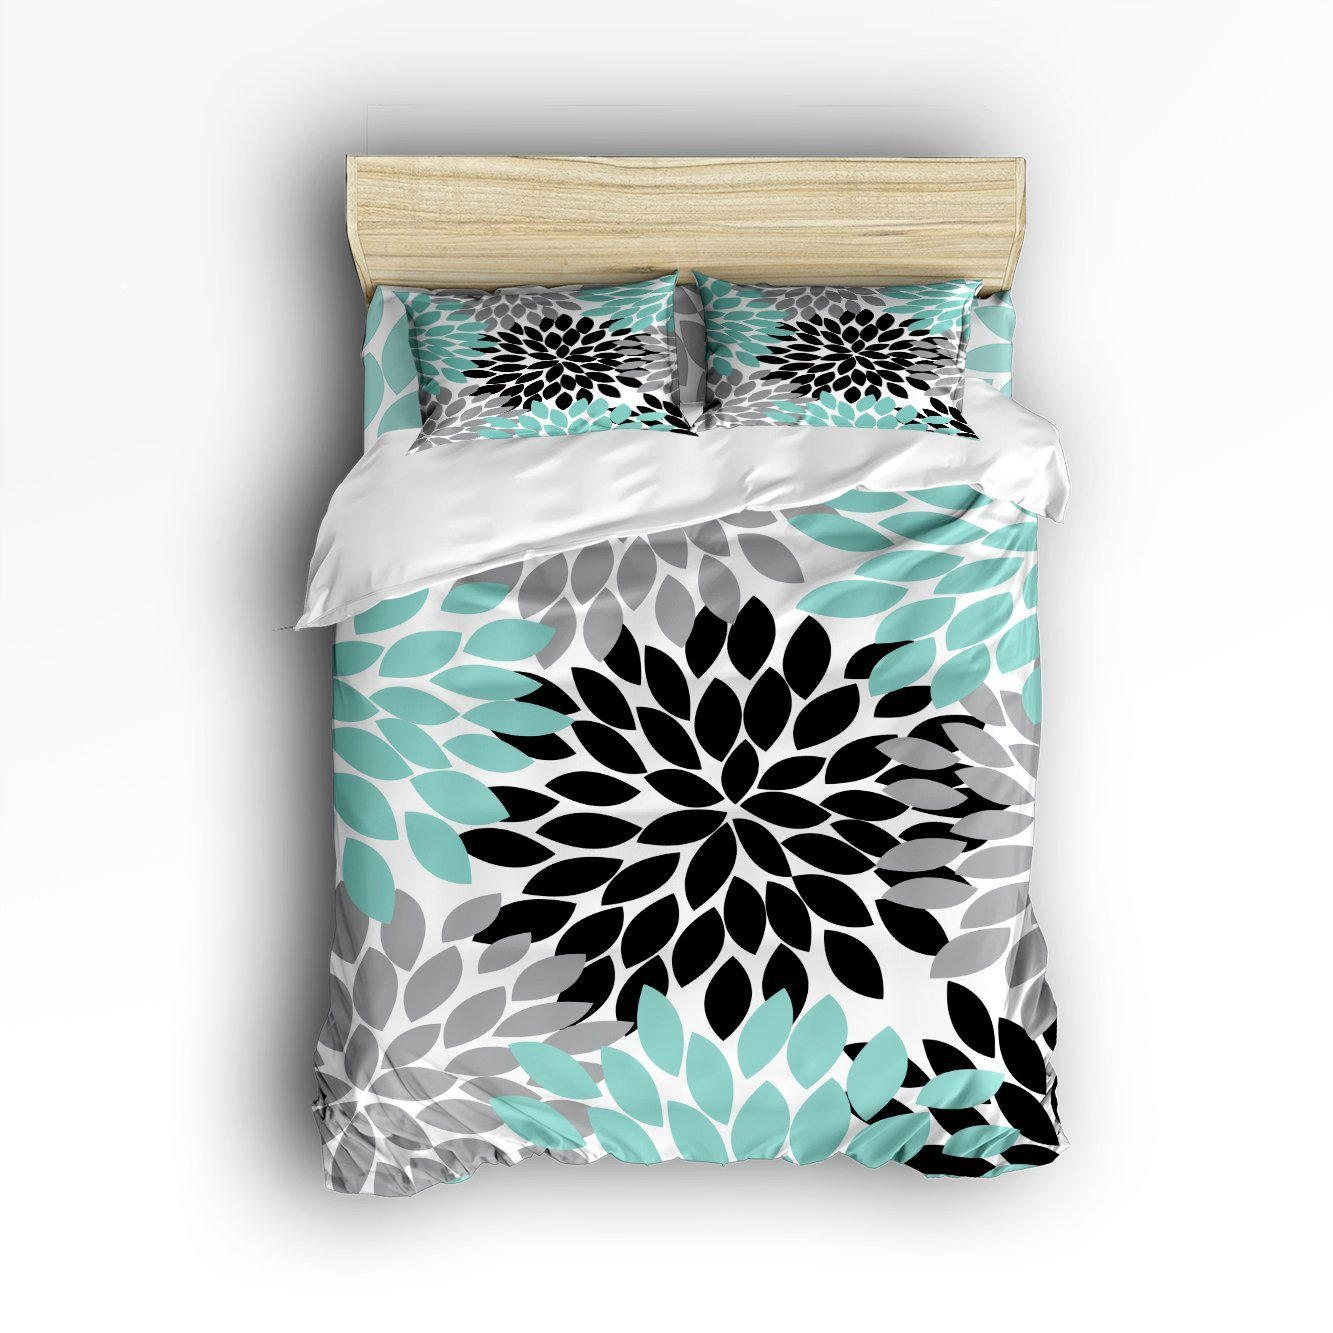 cotton teal henry amazon double dp uk christy quilt alhambra home bedding duvet co blue cover kitchen bed